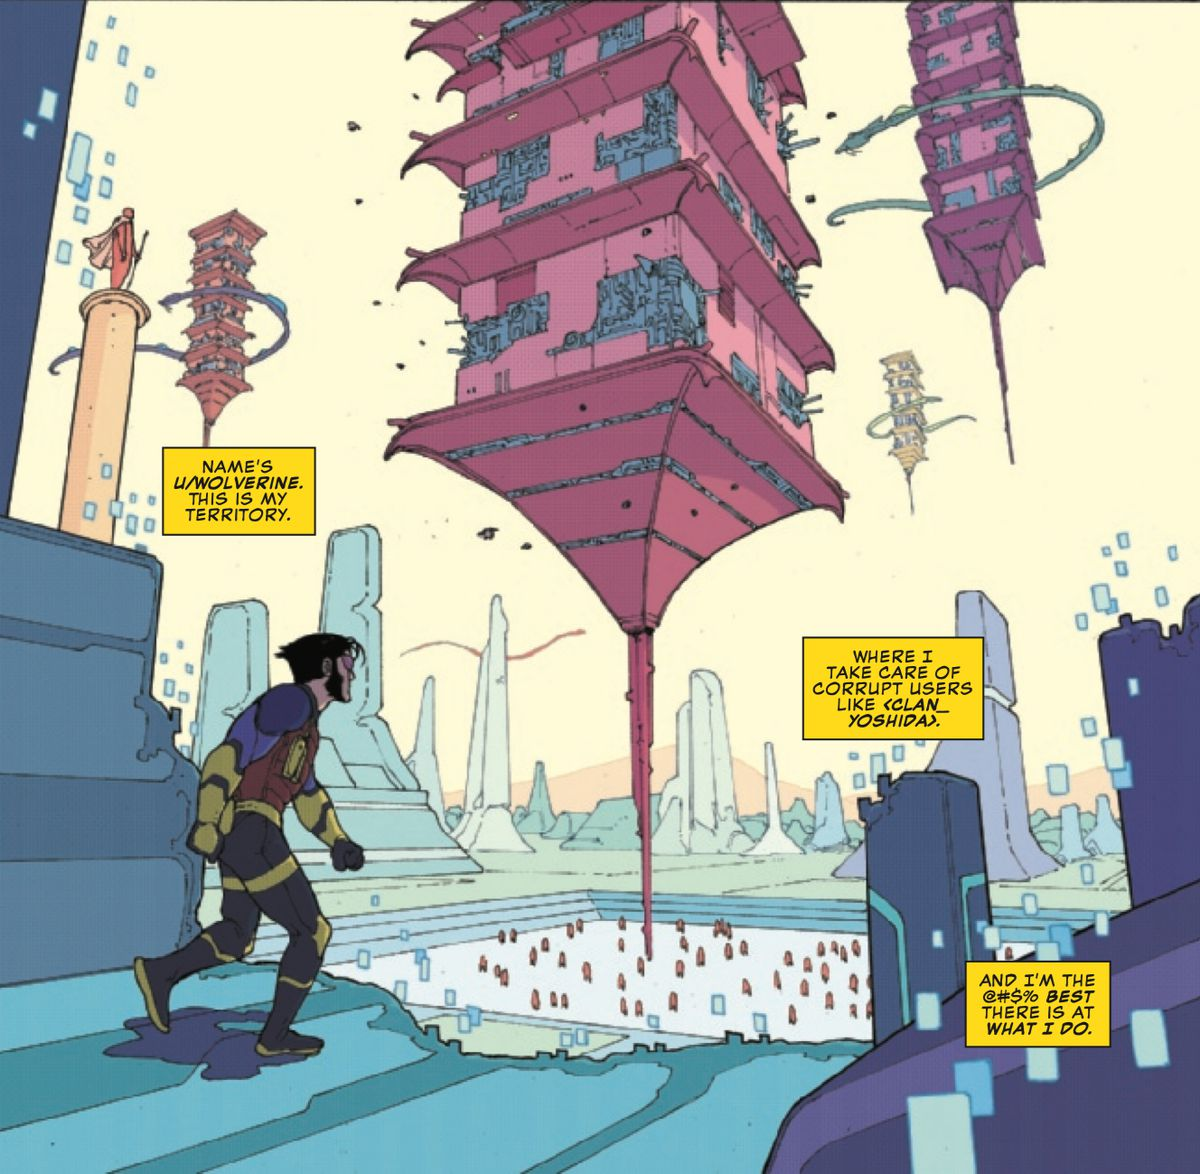 The virtual persona of u/Wolverine, of the exe-Men, in a Japanese-inspired location on the virtual Exe/scape, in Marvel Comics Presents: Wolverine #9, Marvel Comics (2019).